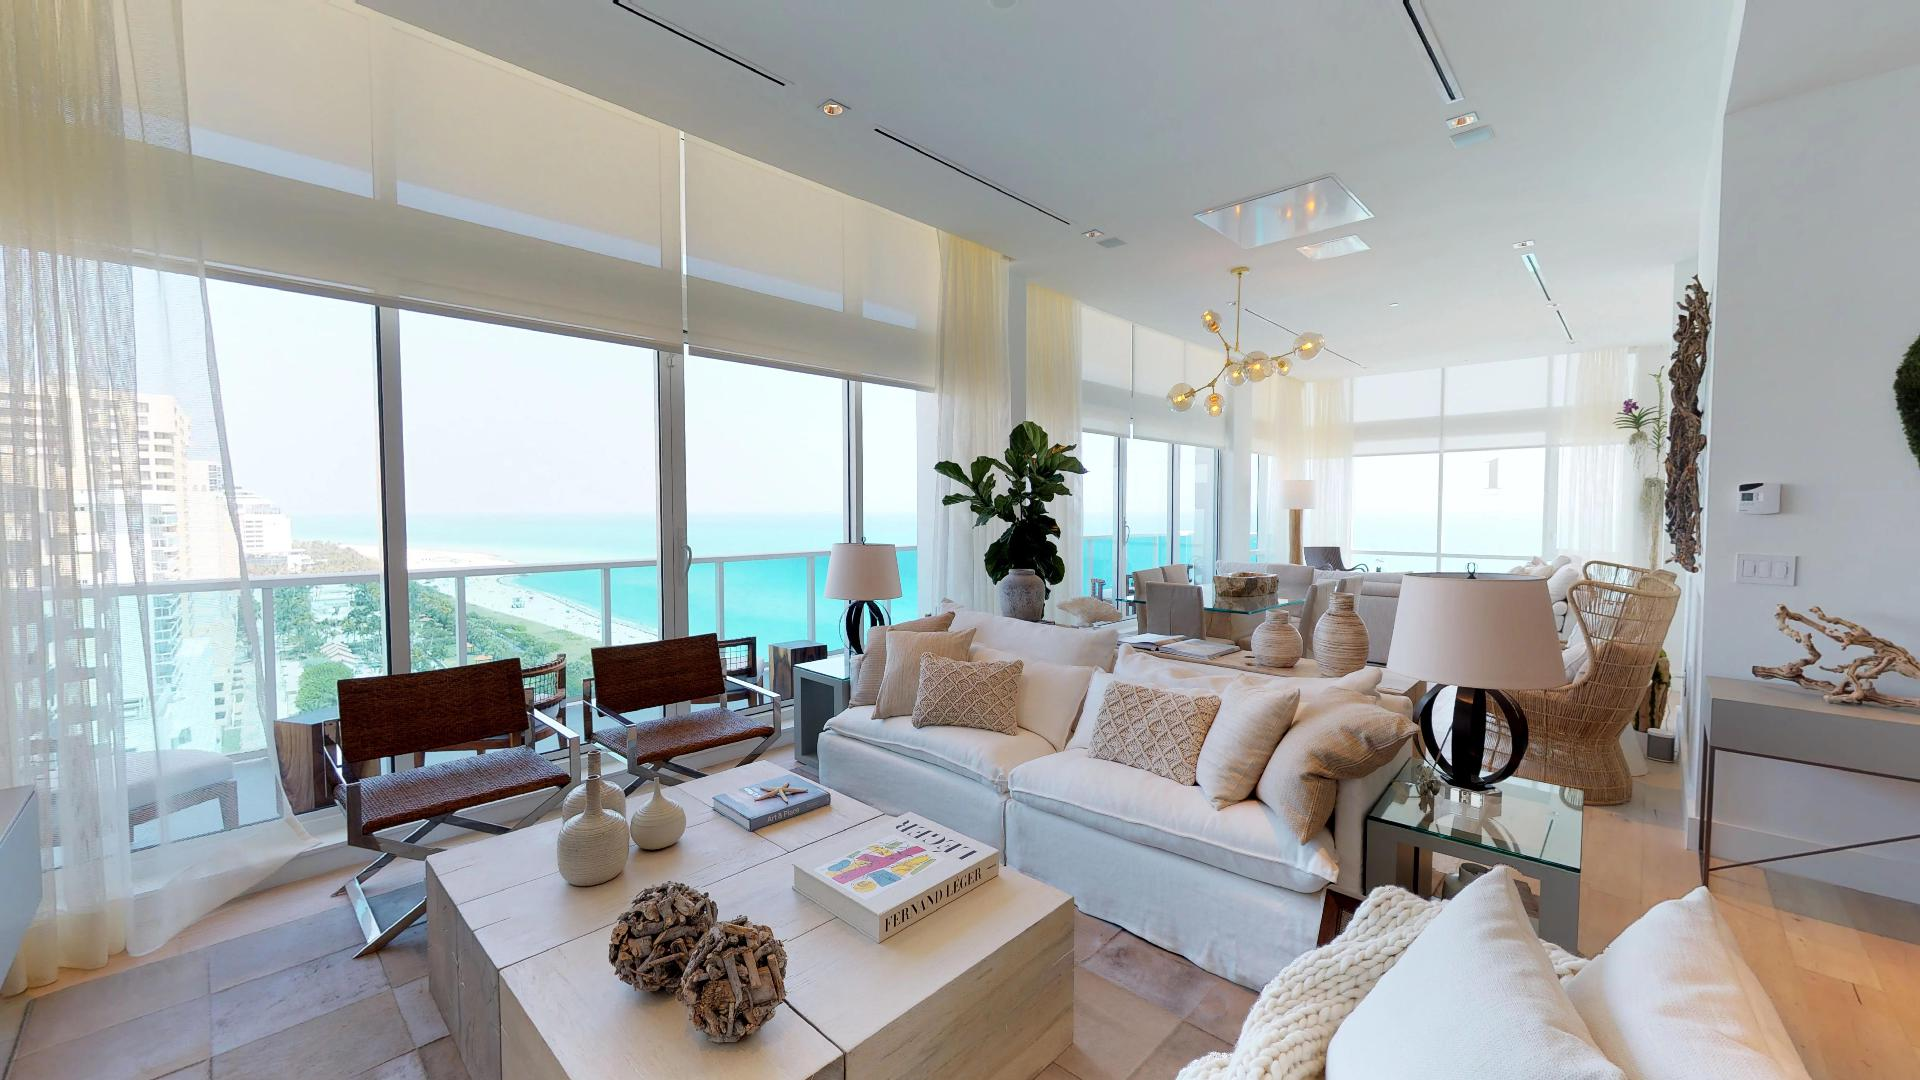 1 Hotel and Homes South Beach Penthouse 1609 03222018 094251